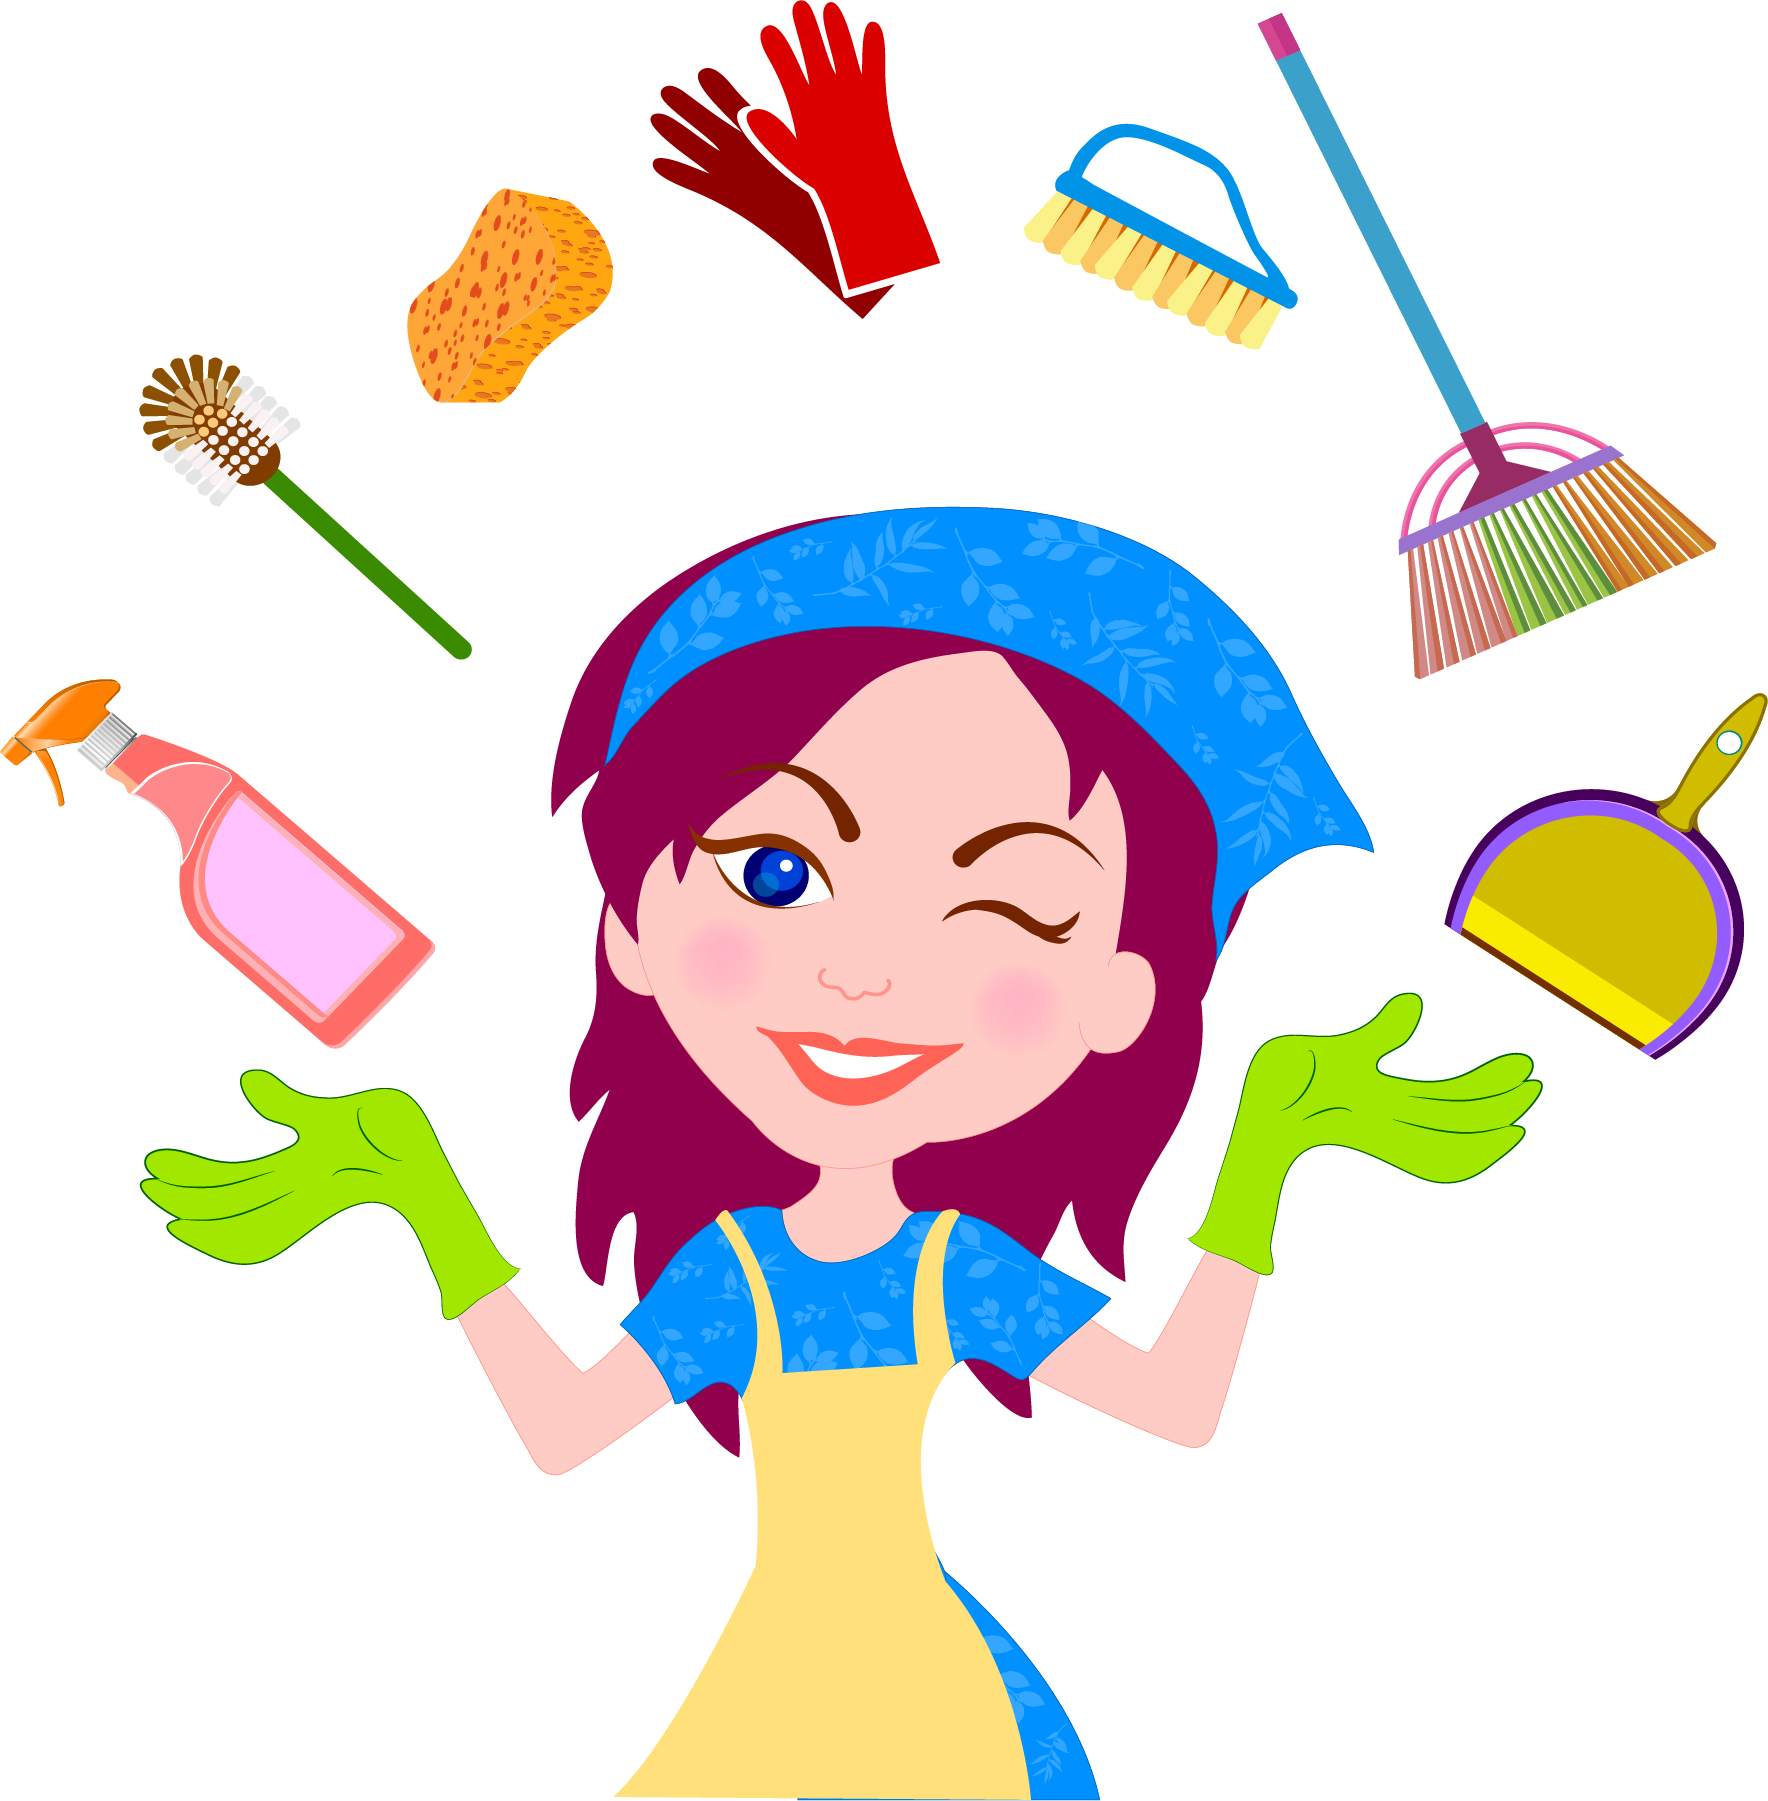 House maid clipart jpg freeuse stock Cleaner Maid service Cleaning Housekeeping - House clean helper 1768 ... jpg freeuse stock